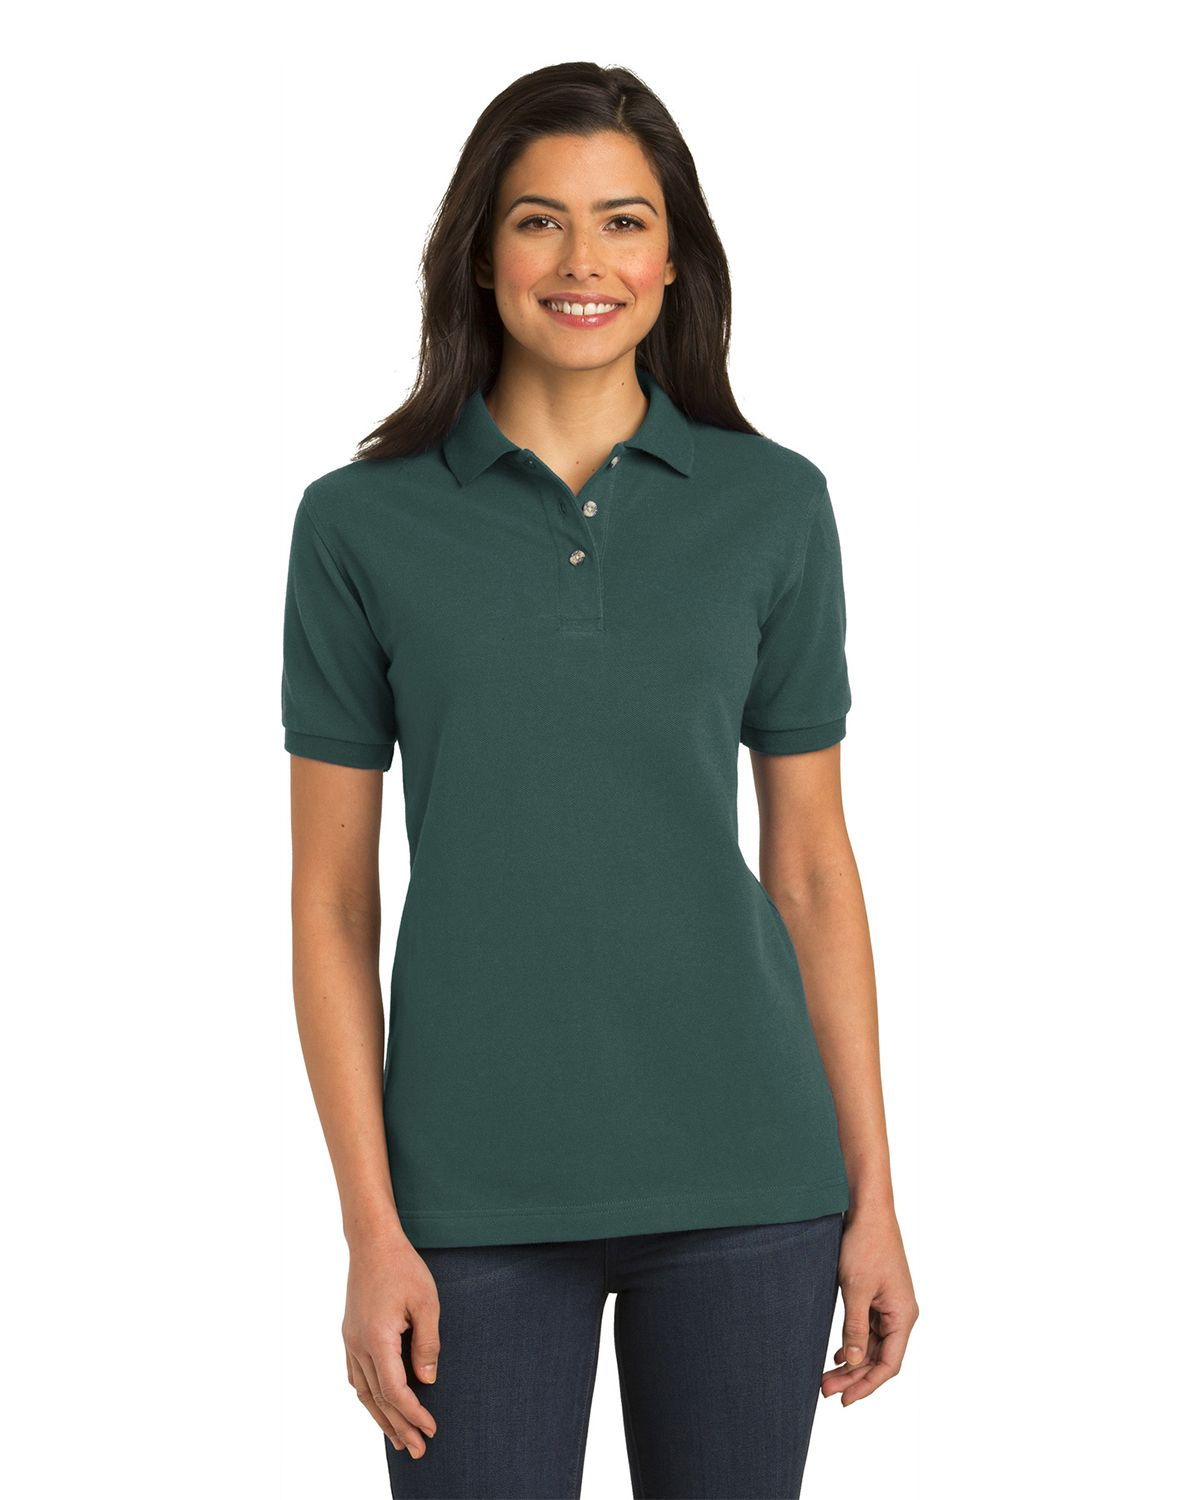 Port Authority L420 Womens Pique Knit Polo - Dark Green - XS